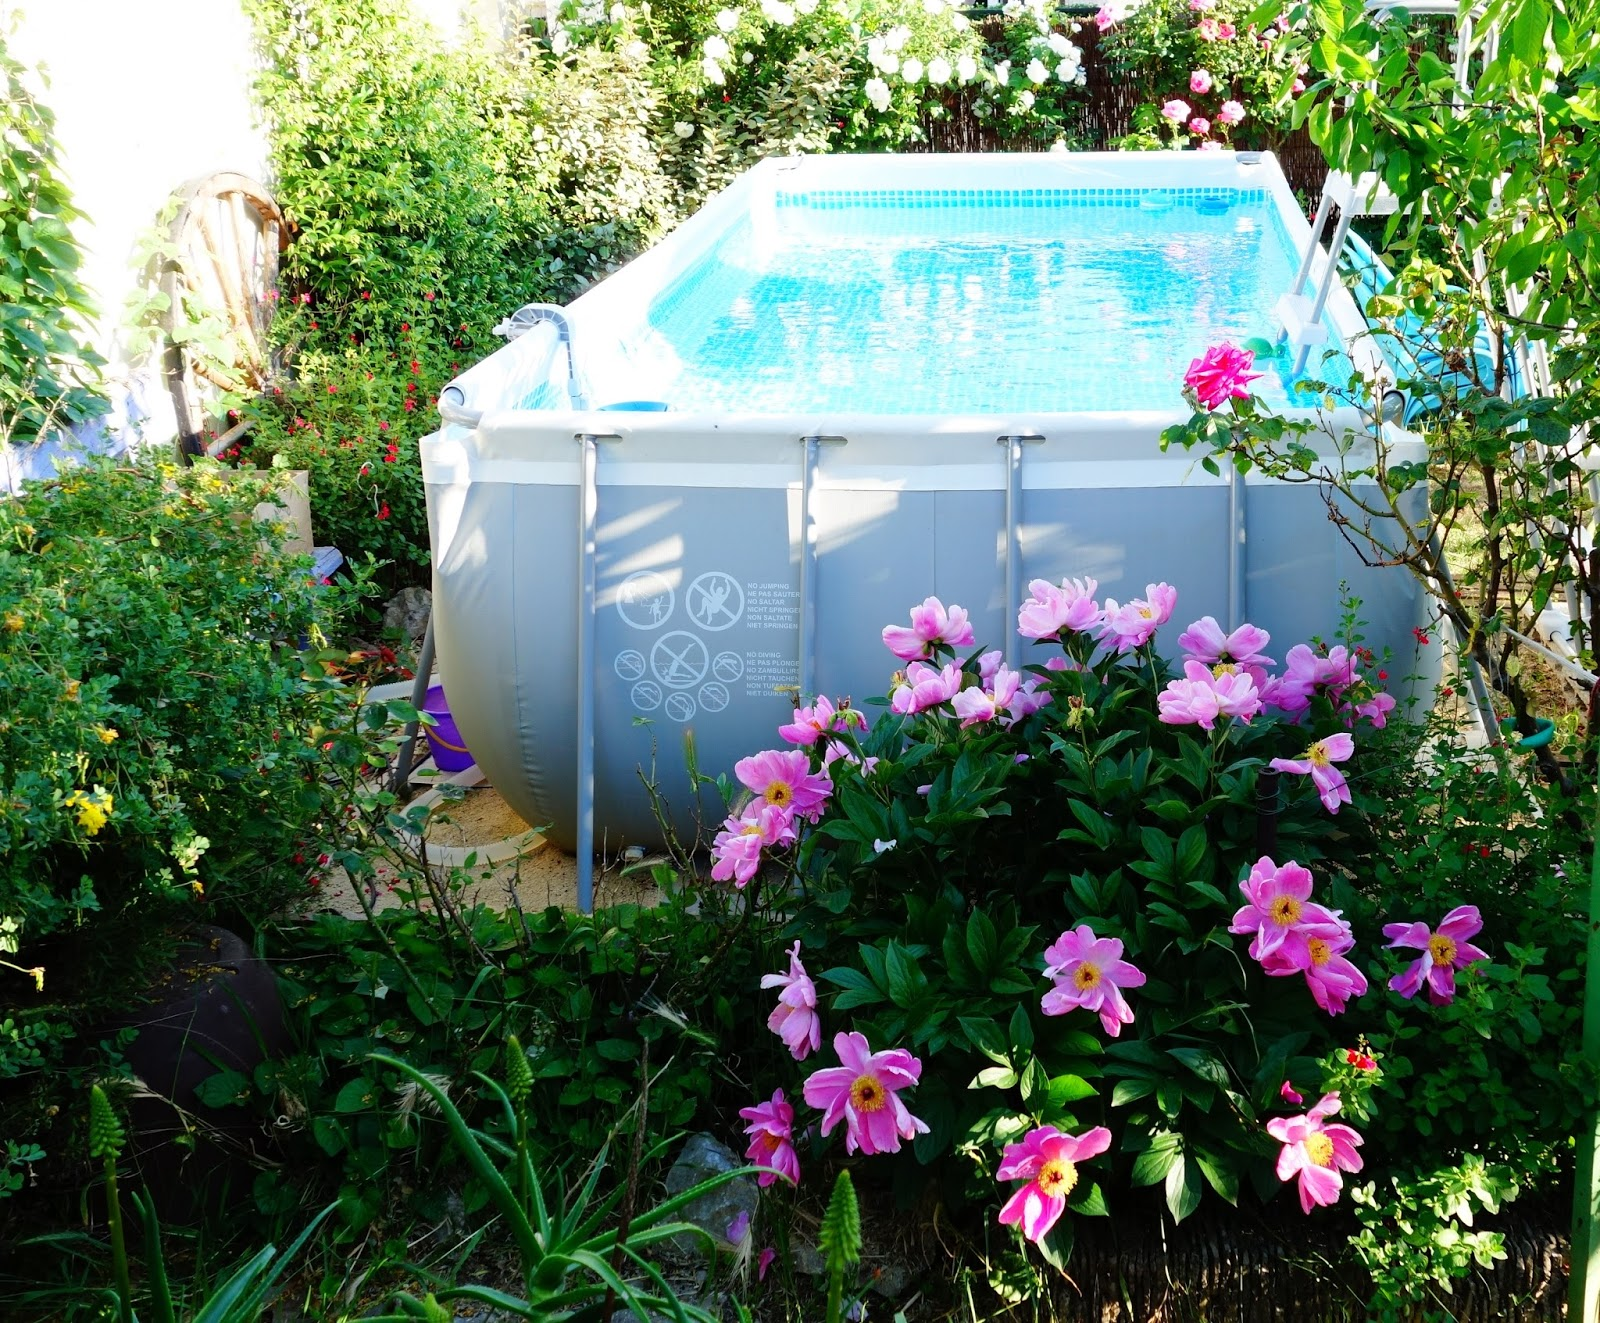 Comment installer et entretenir sa piscine hors sol for Piscine dure hors sol